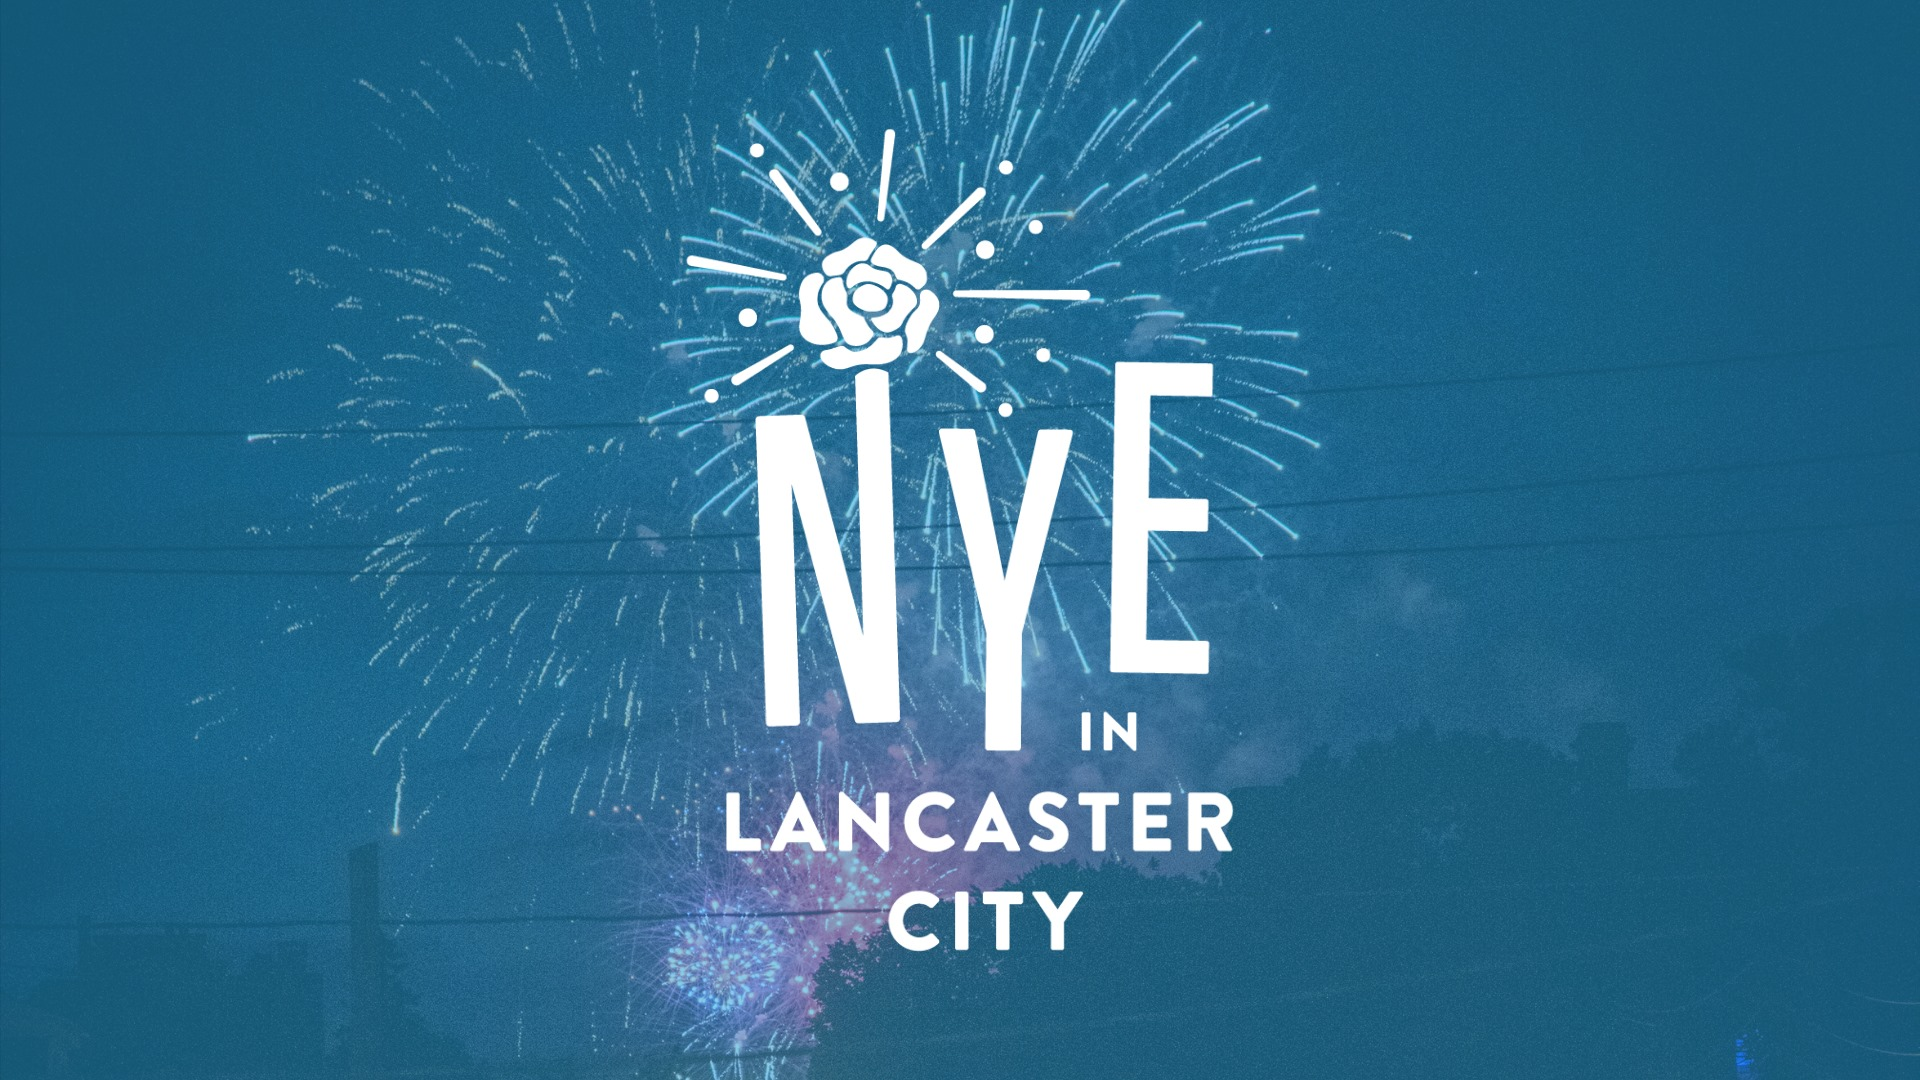 (Source: City of Lancaster)